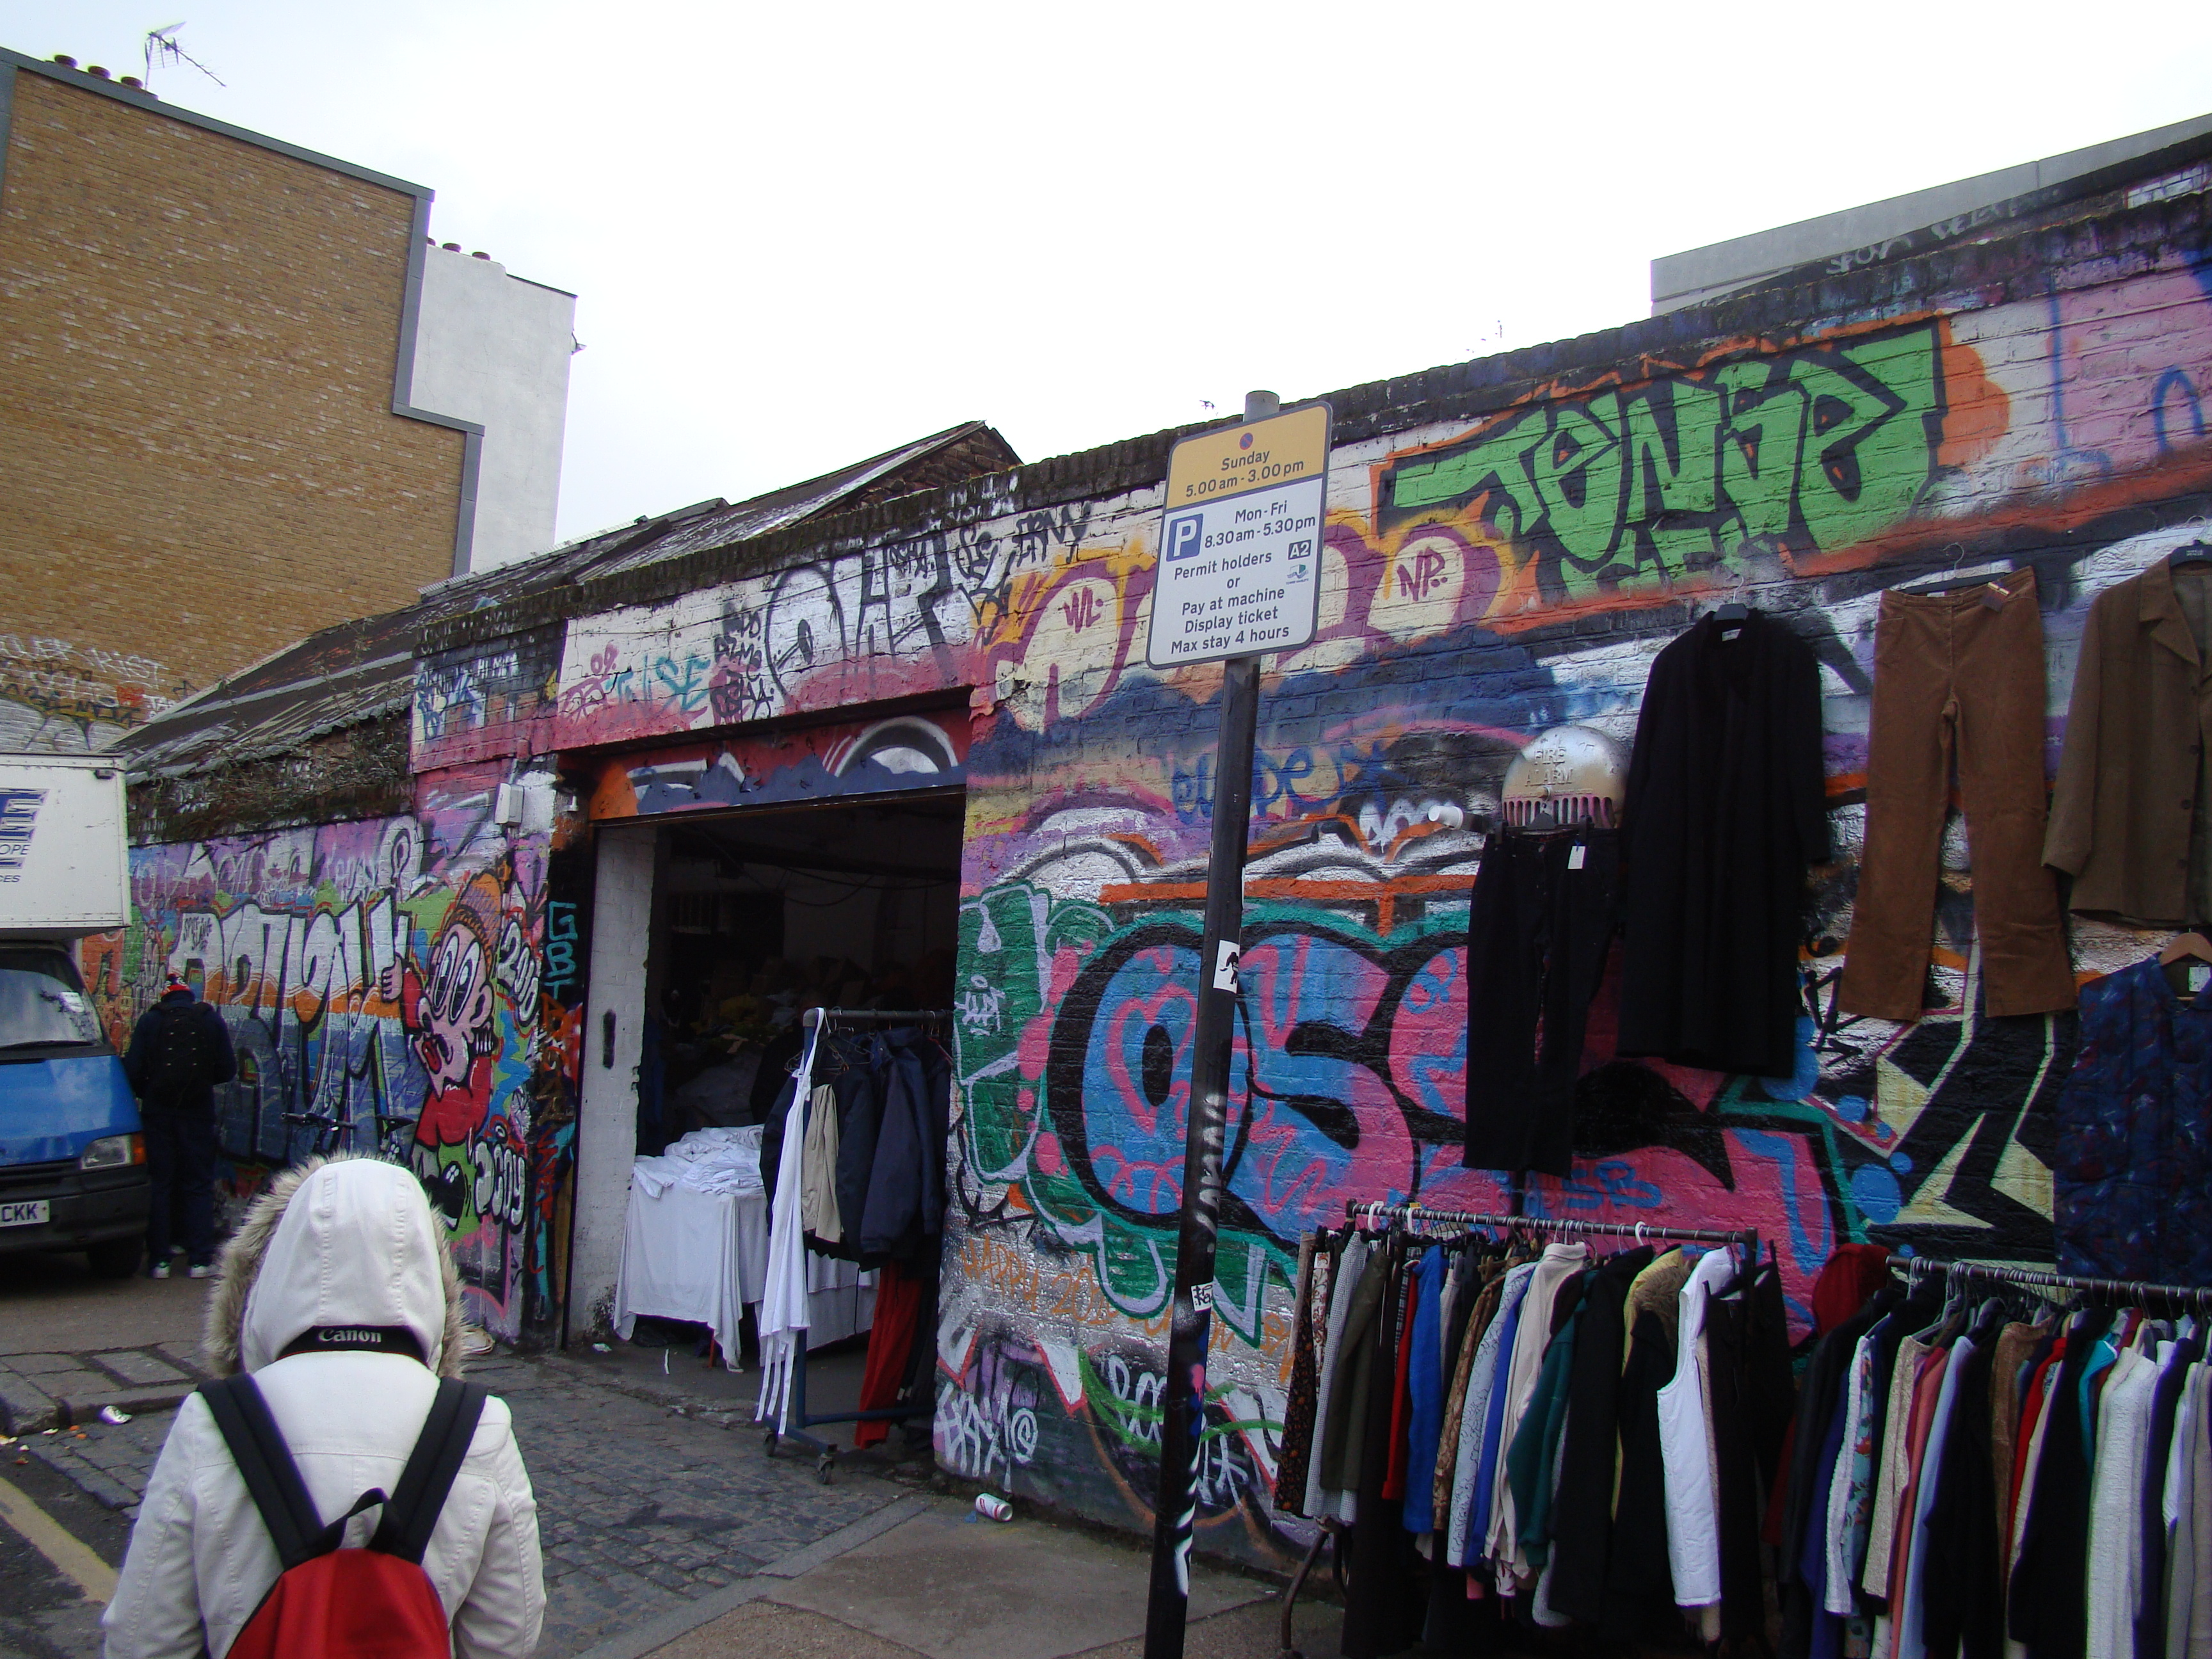 File:Graffiti on a shop front in Sclater Street - geograph.org.uk